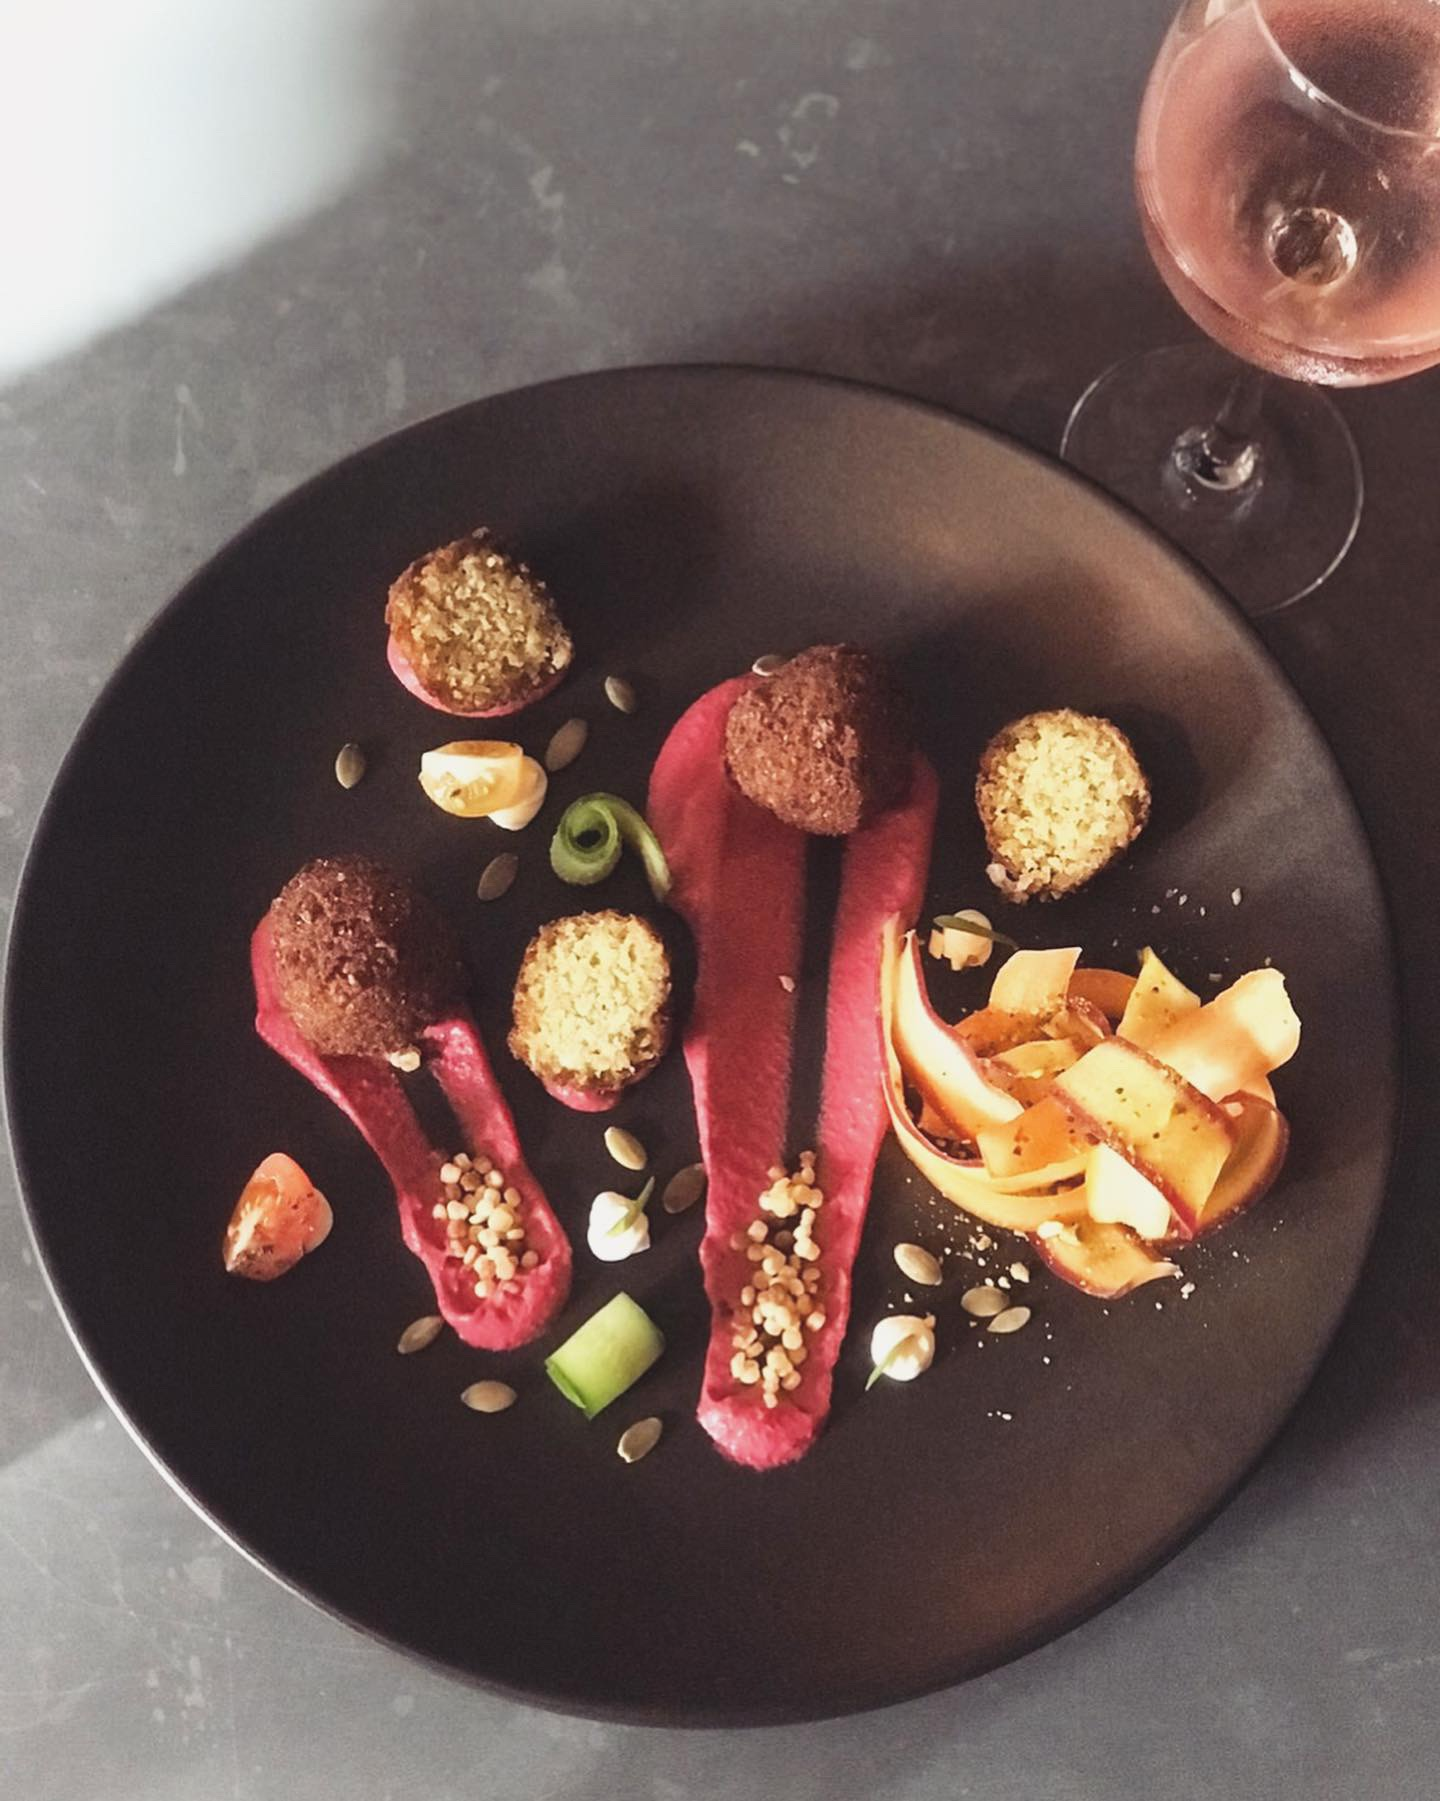 22-28 May - This week Mediterranean cuisines meet at Macchiato. This is our take on a middle eastern infused 🌱 Vegan board.Chickpea falafels, beetroot hummus, heirloom carrots, olives, cucumber and vegan labneh.